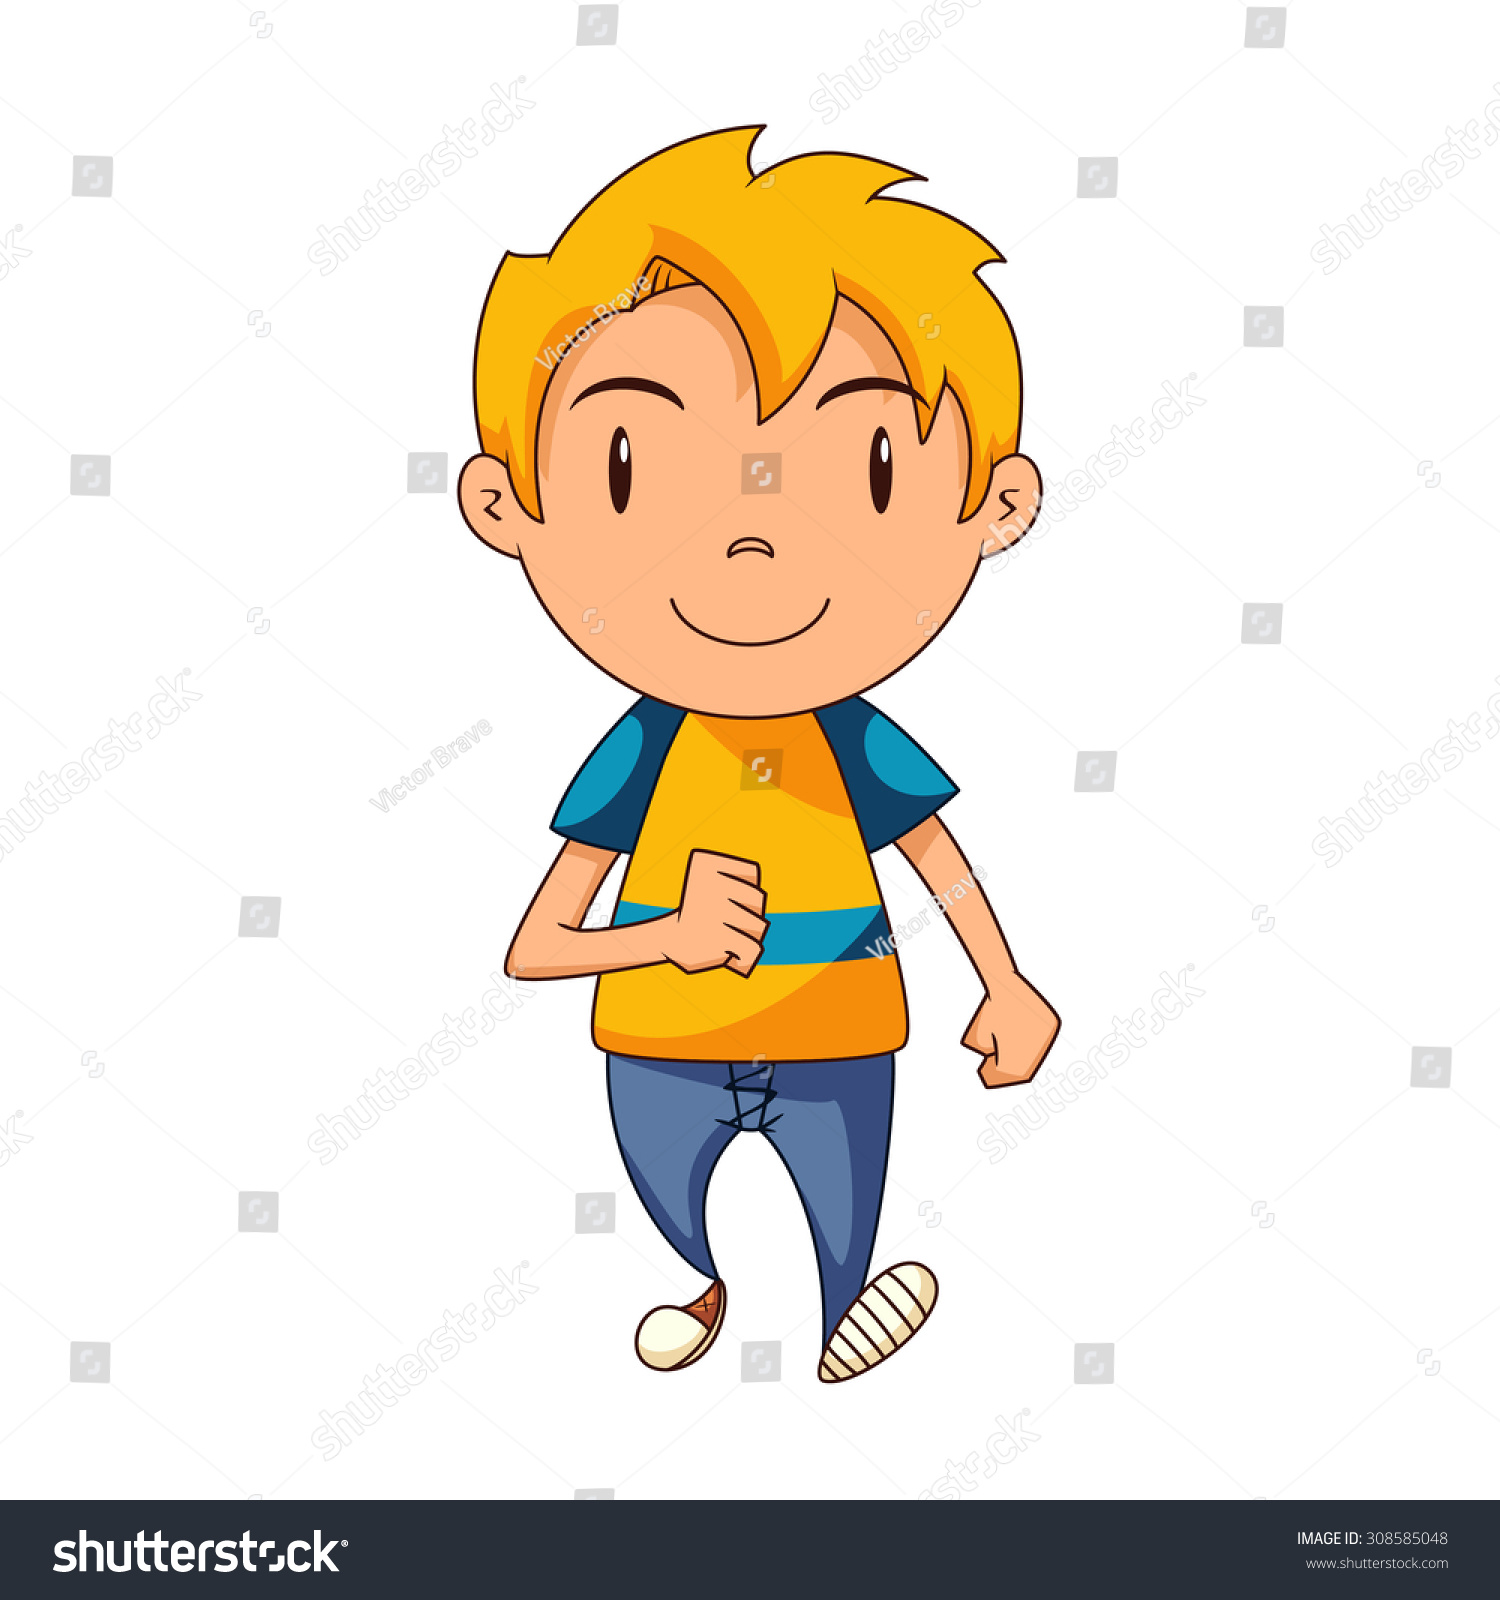 Kid walking clipart » Clipart Station.